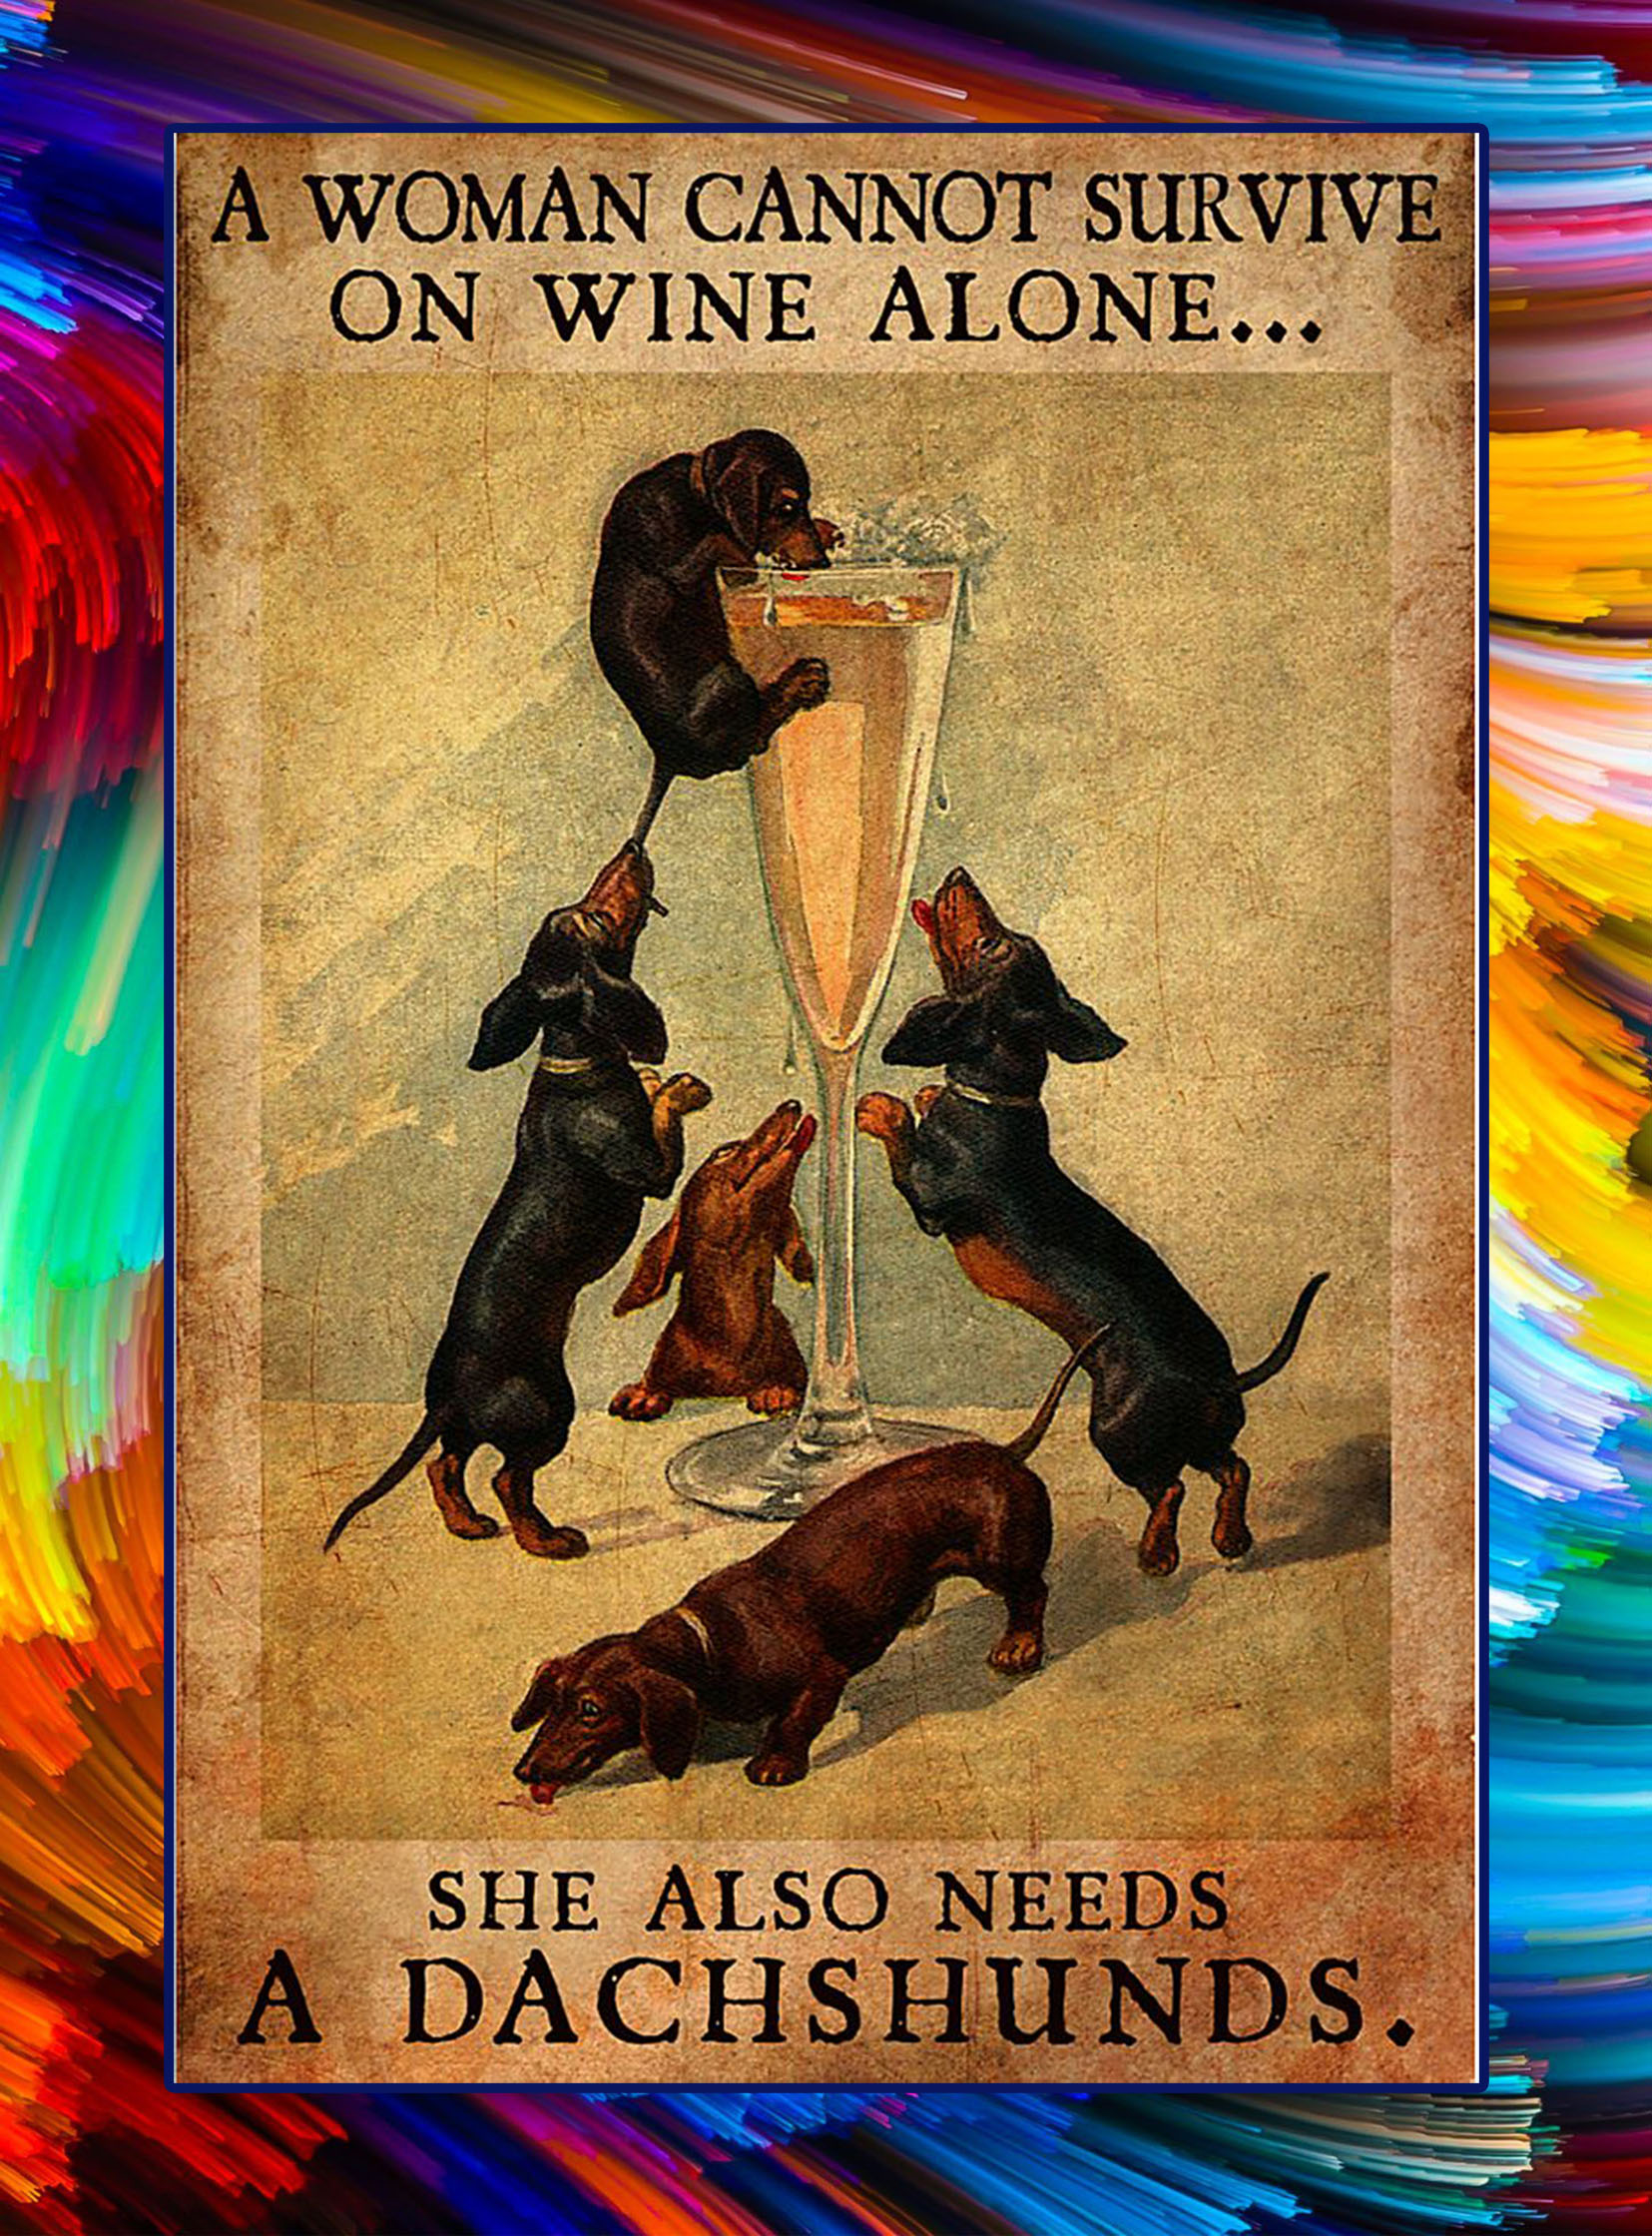 A woman cannot survive on wine alone she also needs a dachshunds poster - A1